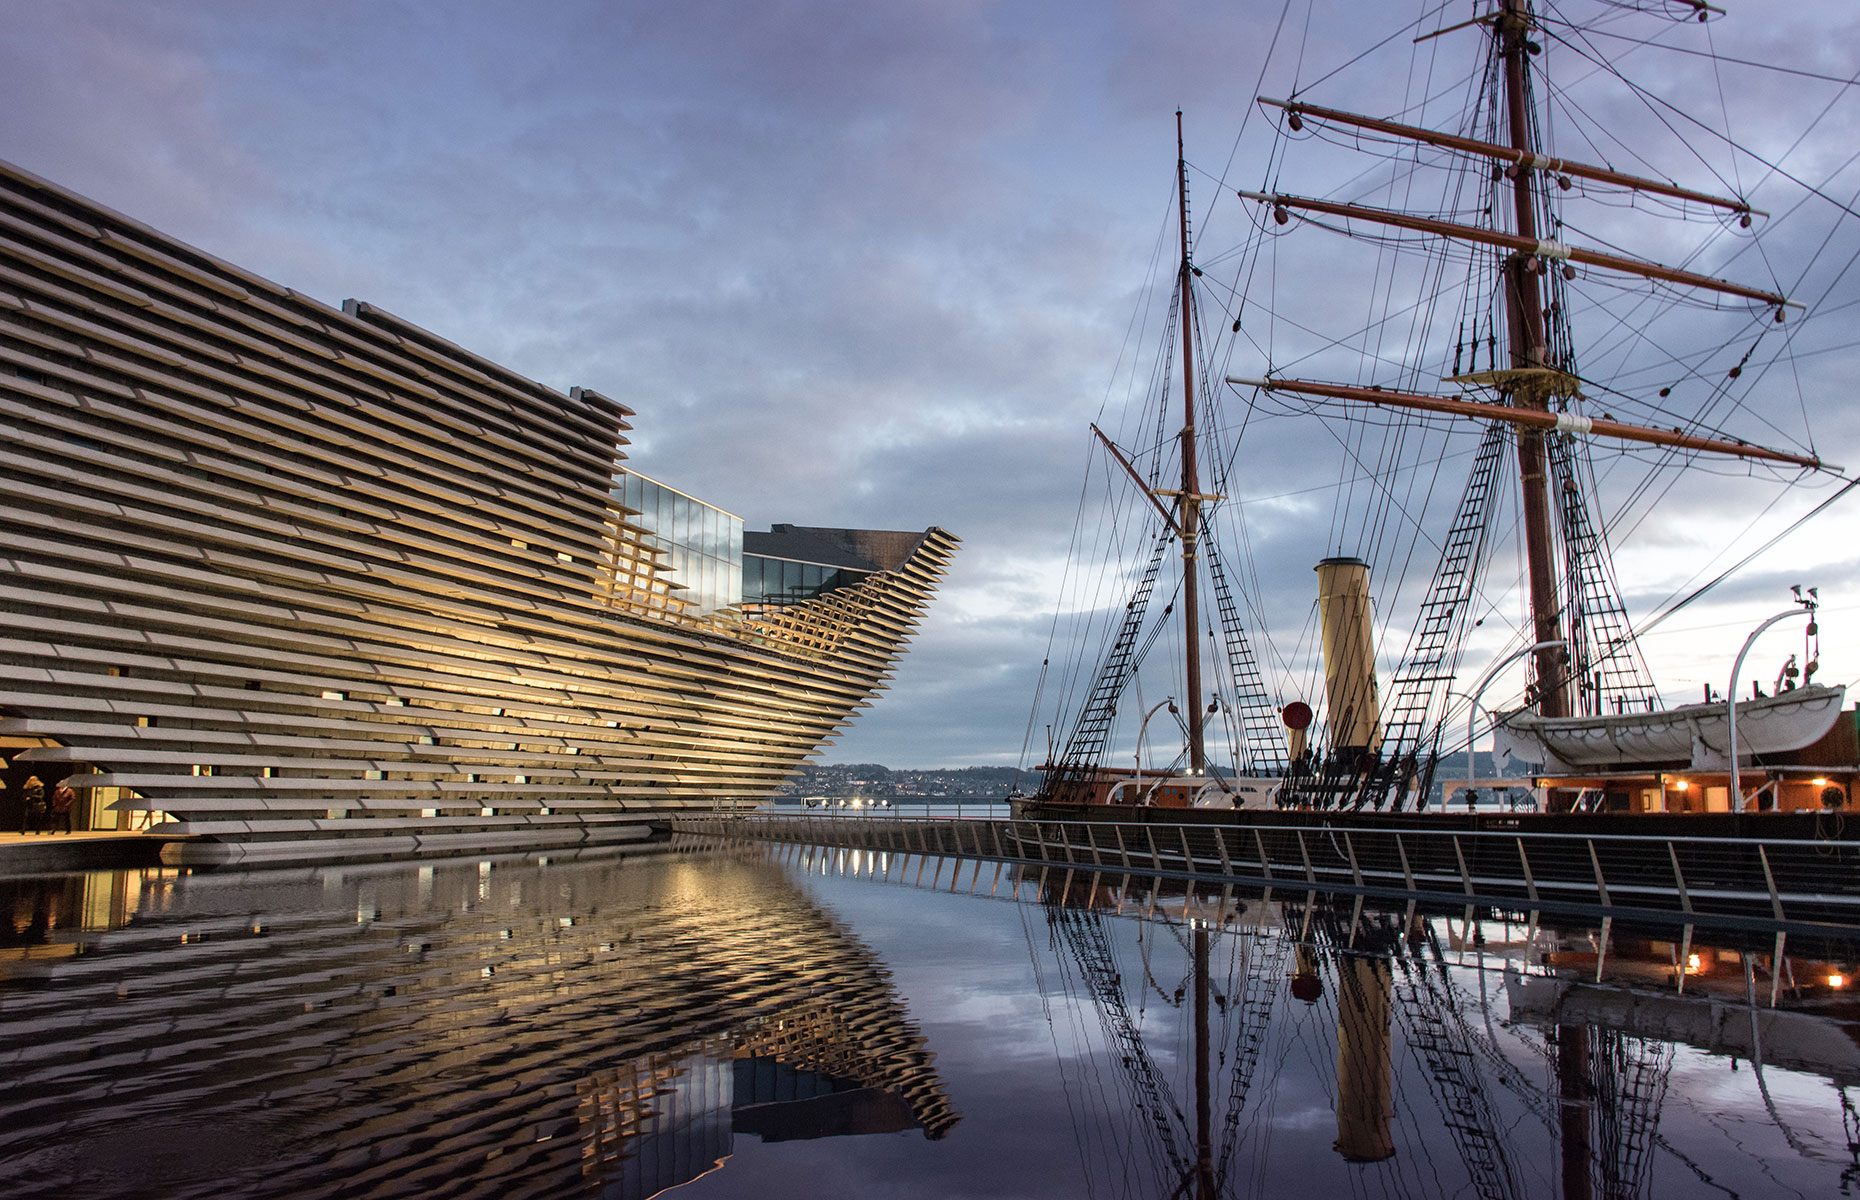 Dundee's waterfront with the RRS Discovery and the V&A Dundee museum (Image: Robin MacGregor/Shutterstock)